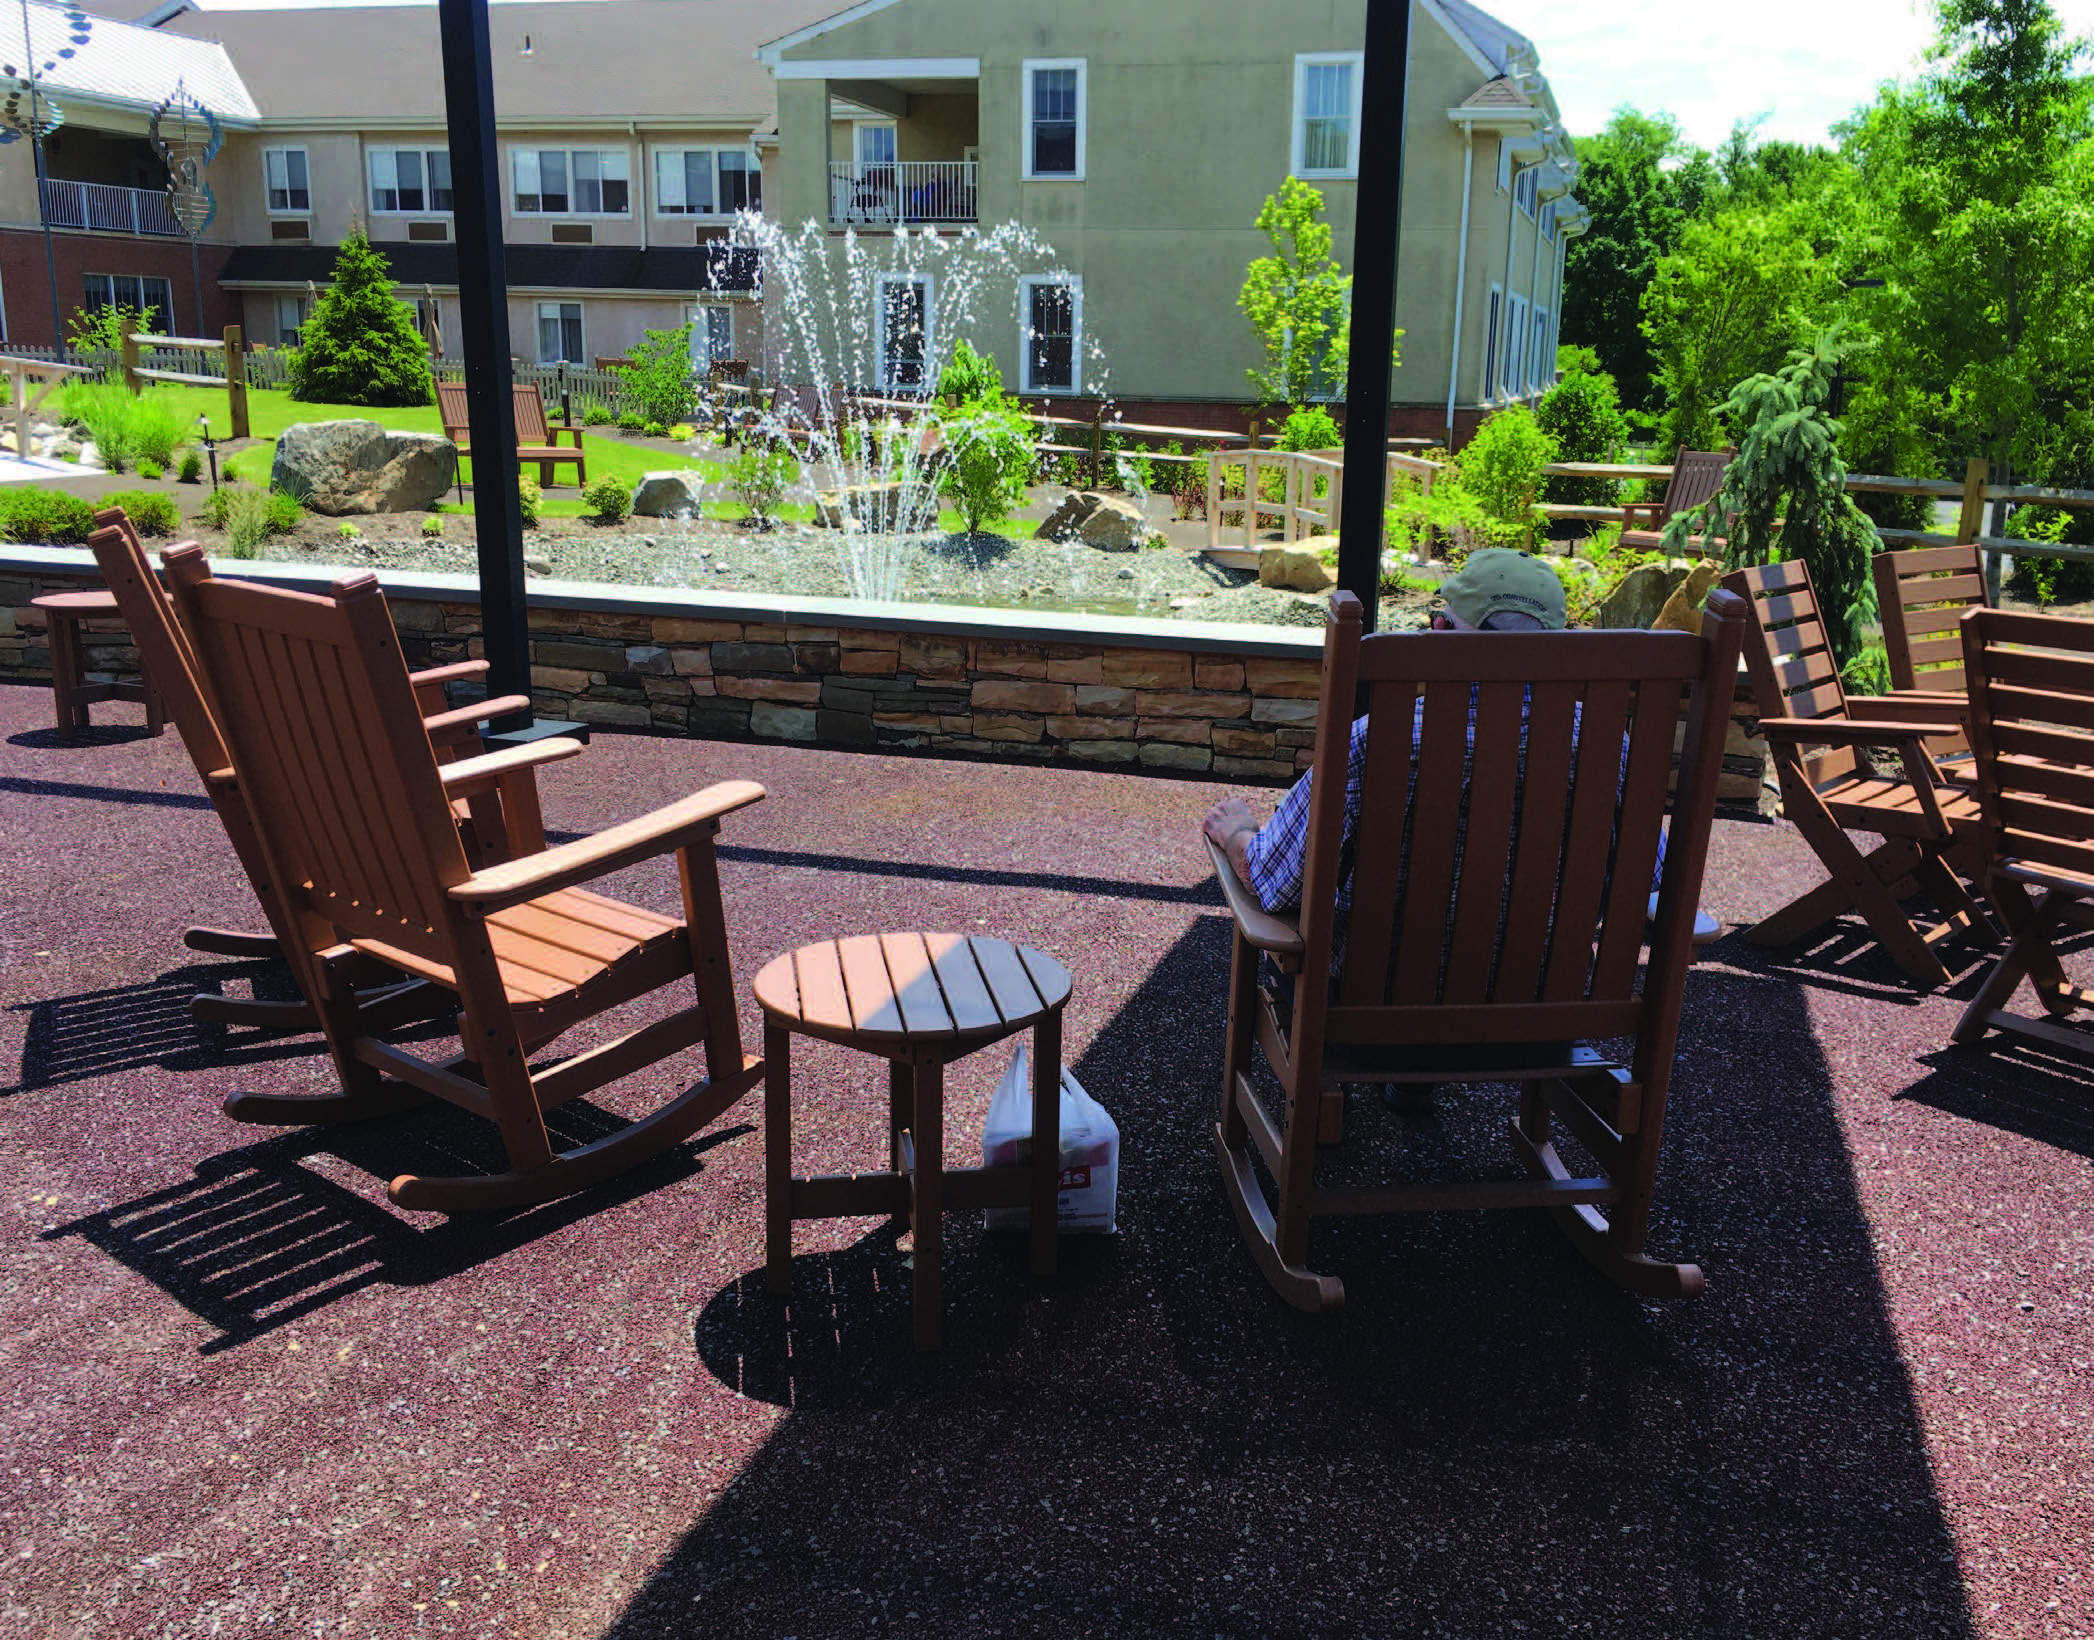 Stormwater Retention 100 Percent Design For Generations 2 0